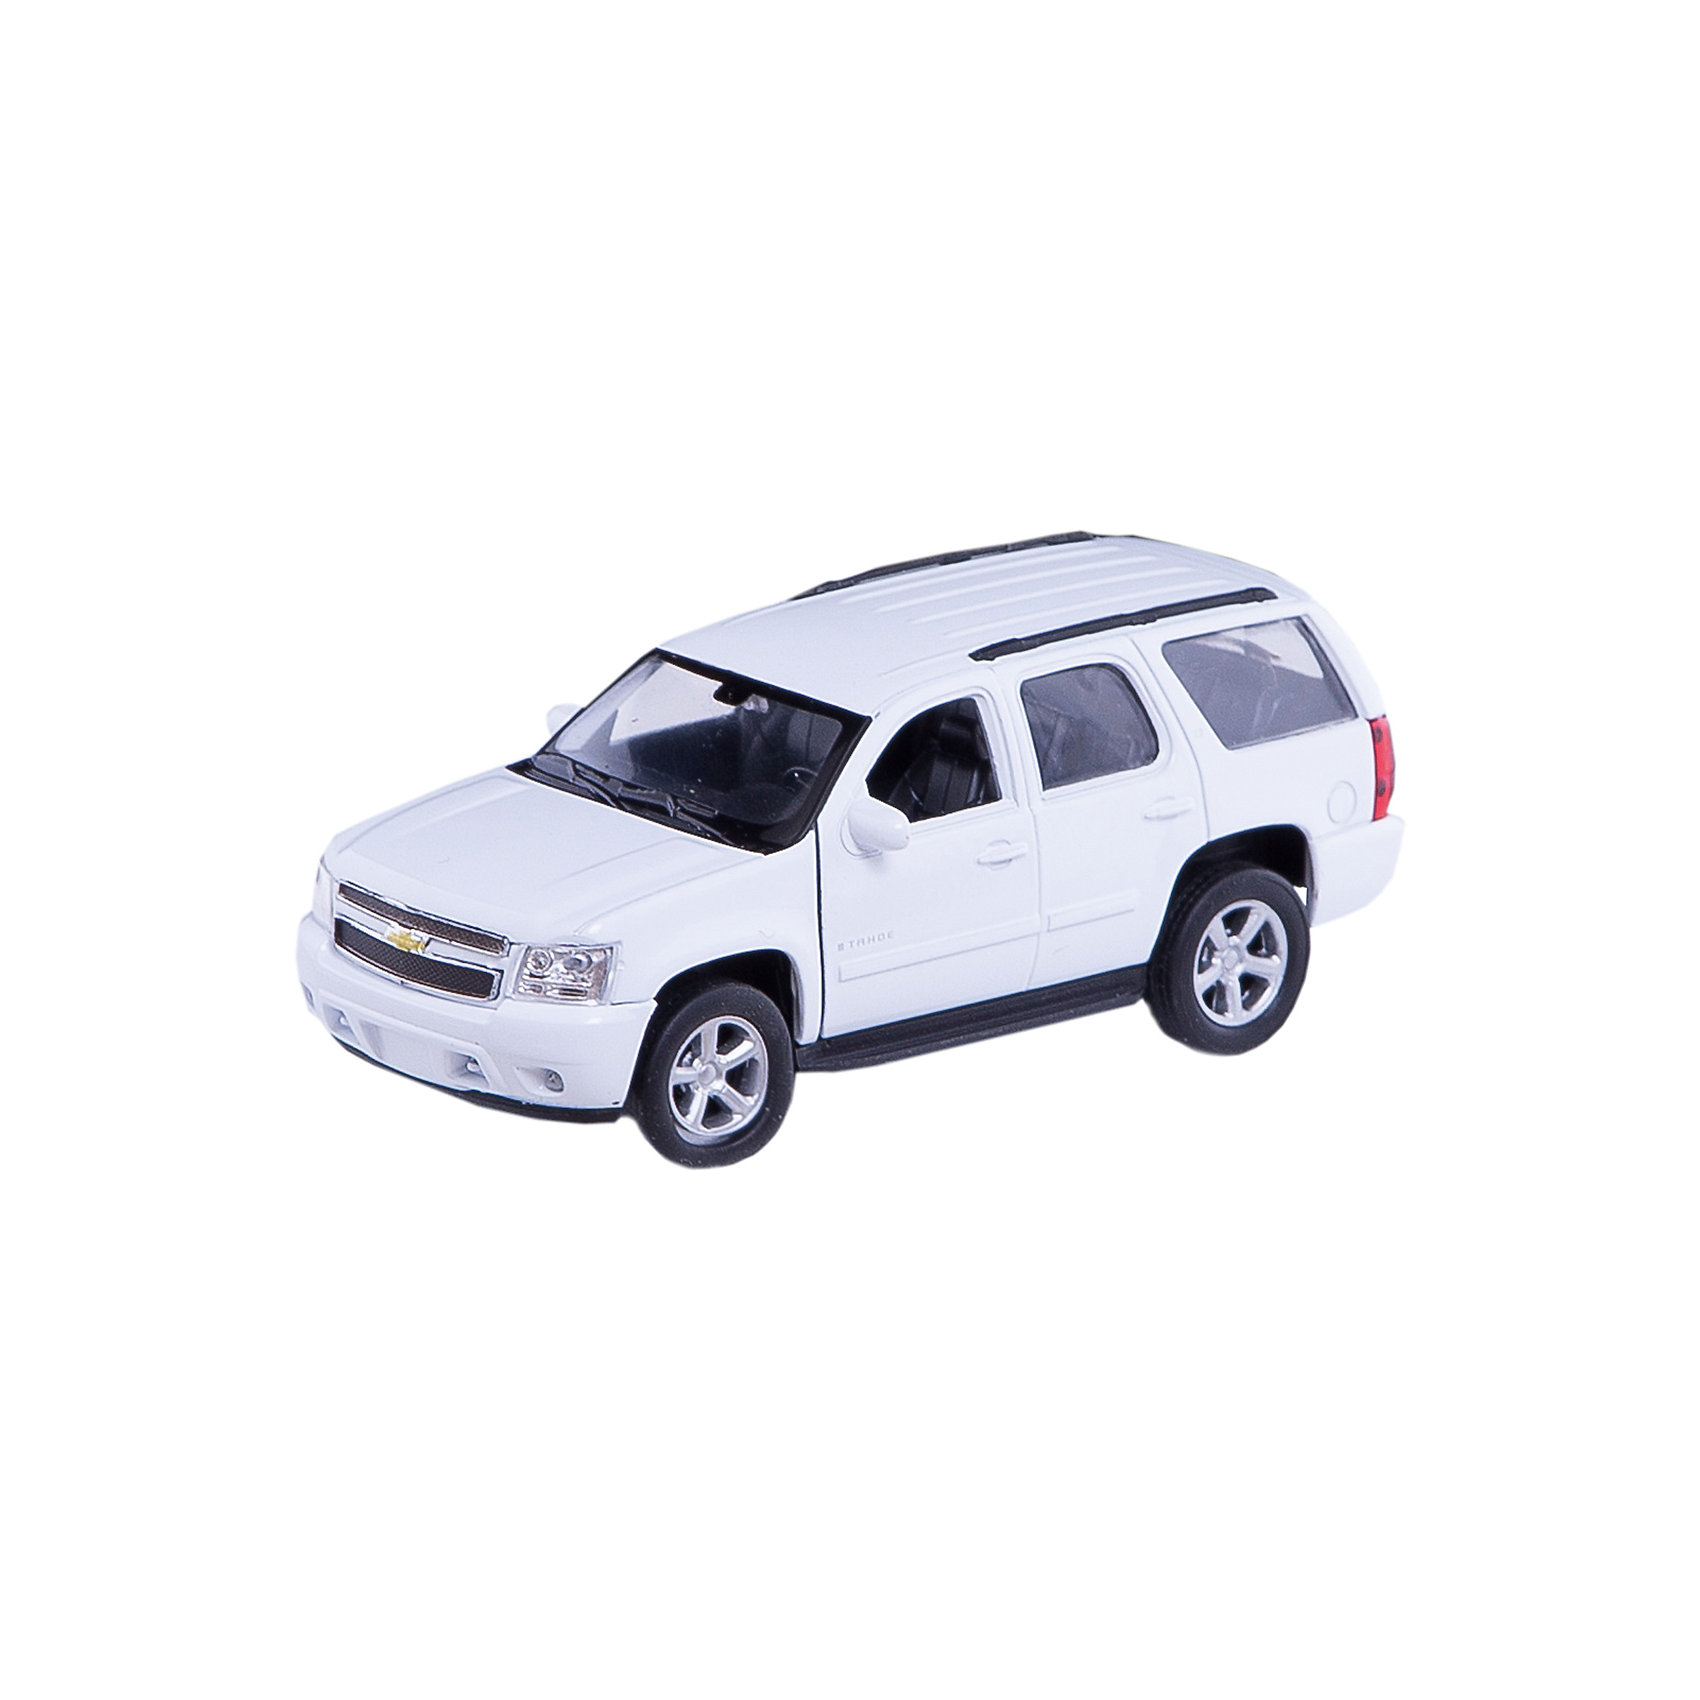 Welly Модель машины 1:34-39 Chevrolet Tahoe, Welly автомобиль welly nissan gtr 1 34 39 белый 43632